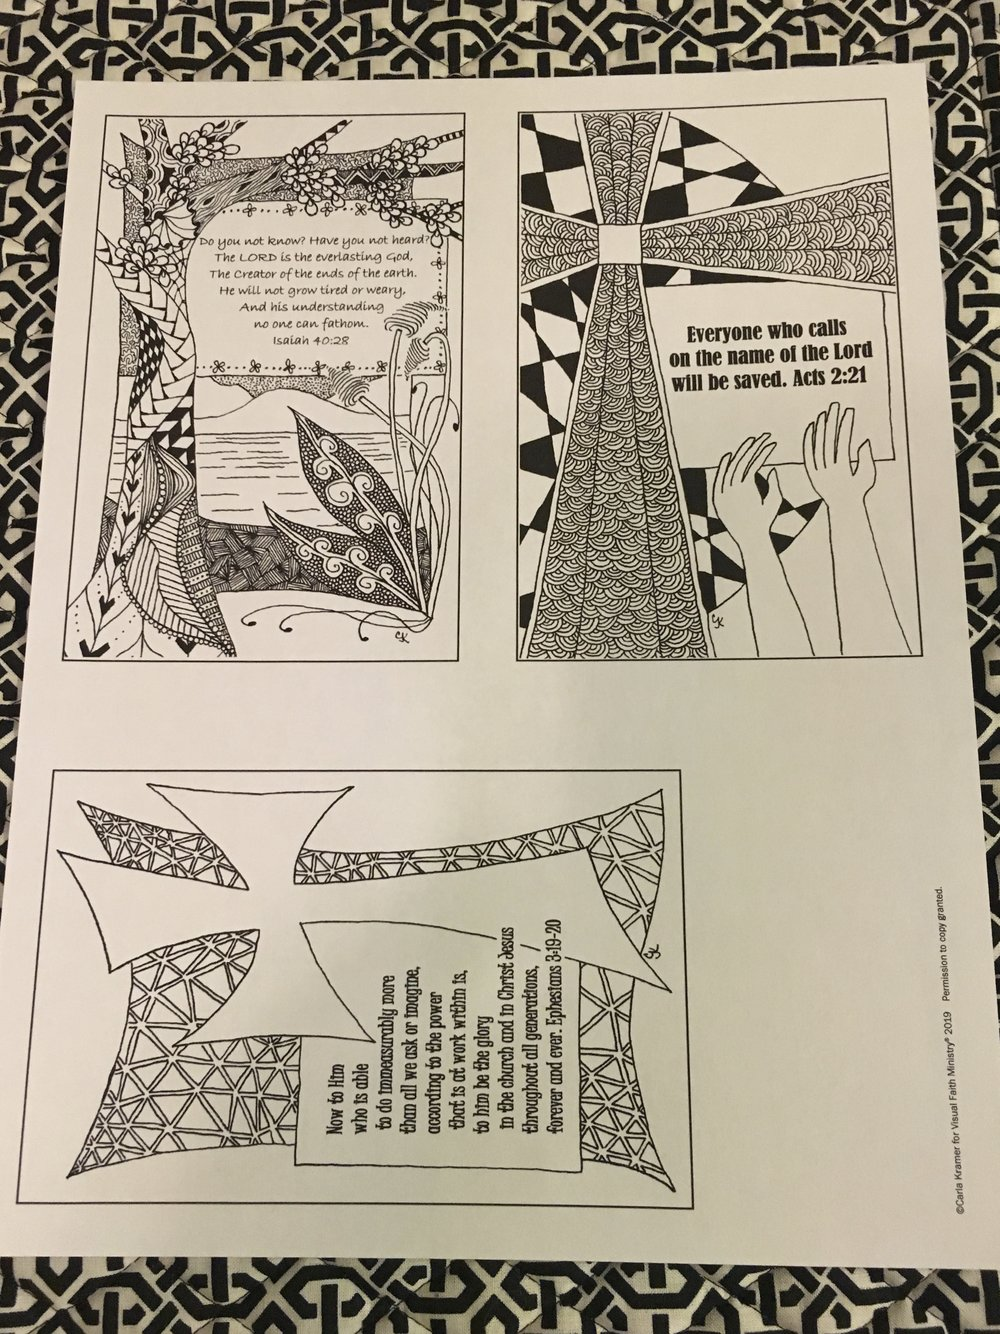 The black pen images are intricate and provide thoughtful prayer meditation images just as they are designed.